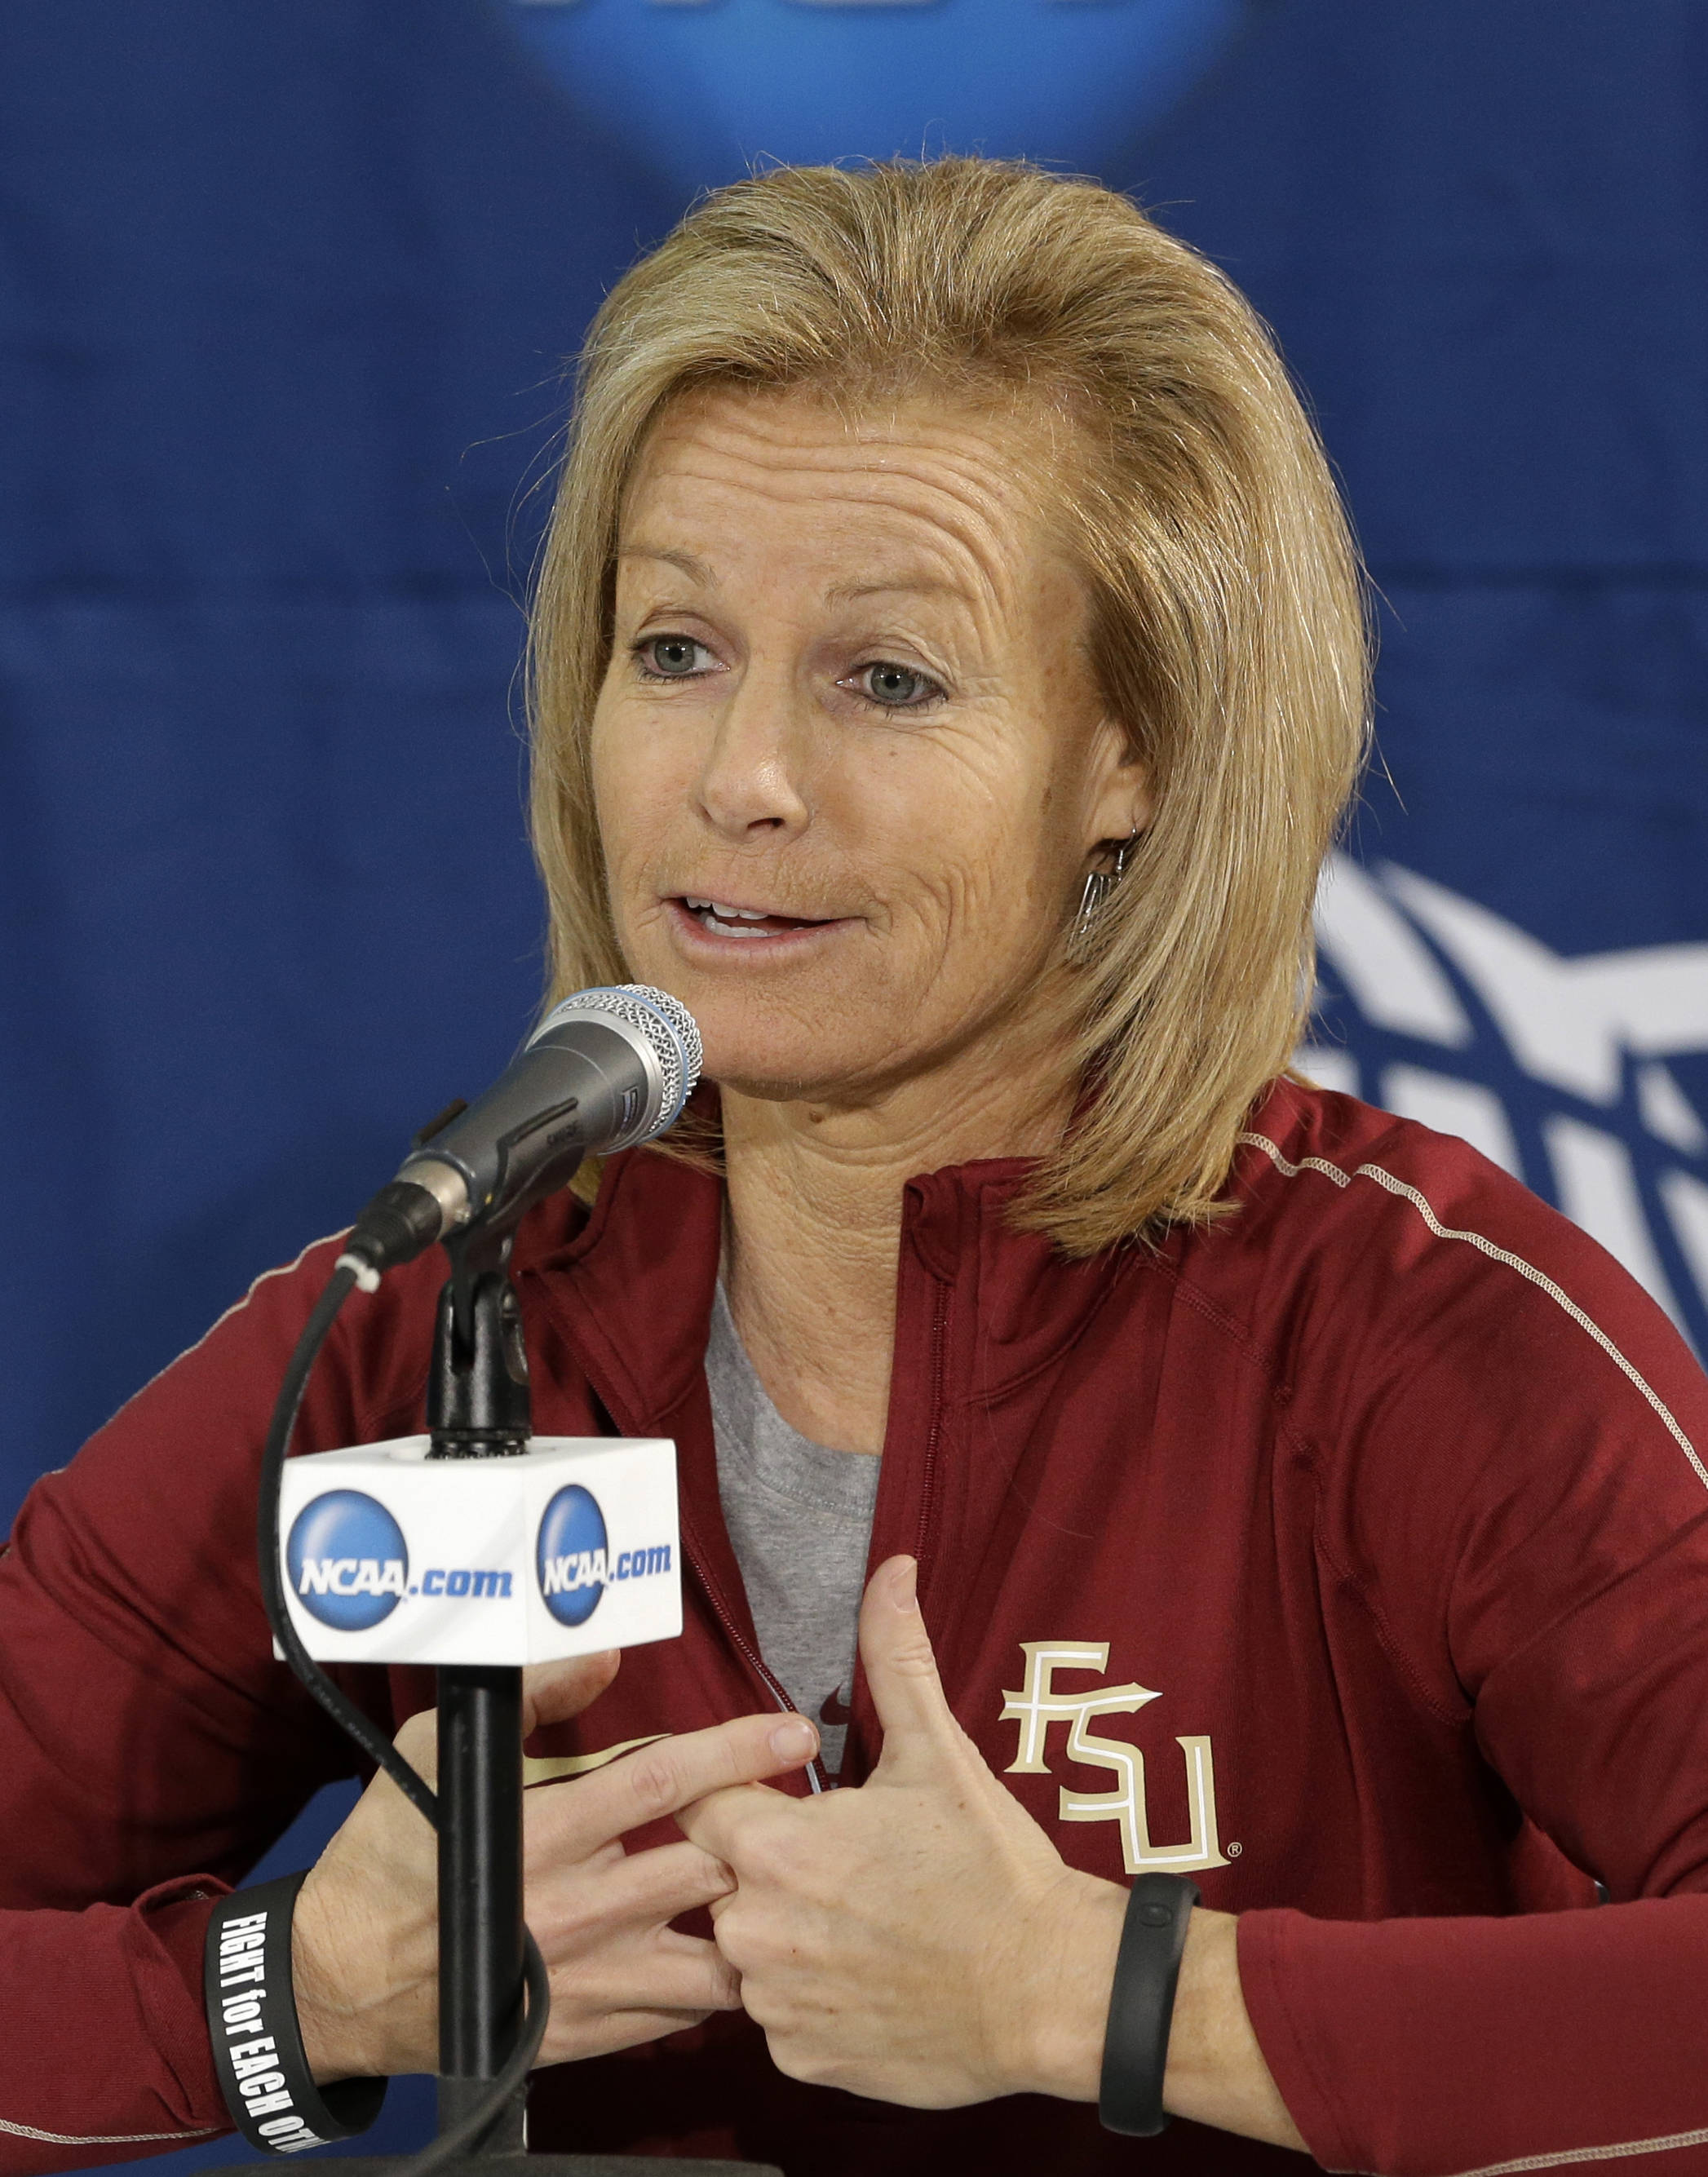 Florida State head coach Sue Semrau  responds to a reporters question during a press conference at the women's NCAA college basketball tournament Monday, March 25, 2013, in Waco, Texas. FSU is scheduled to play Baylor on Tuesday. (AP Photo/Tony Gutierrez)